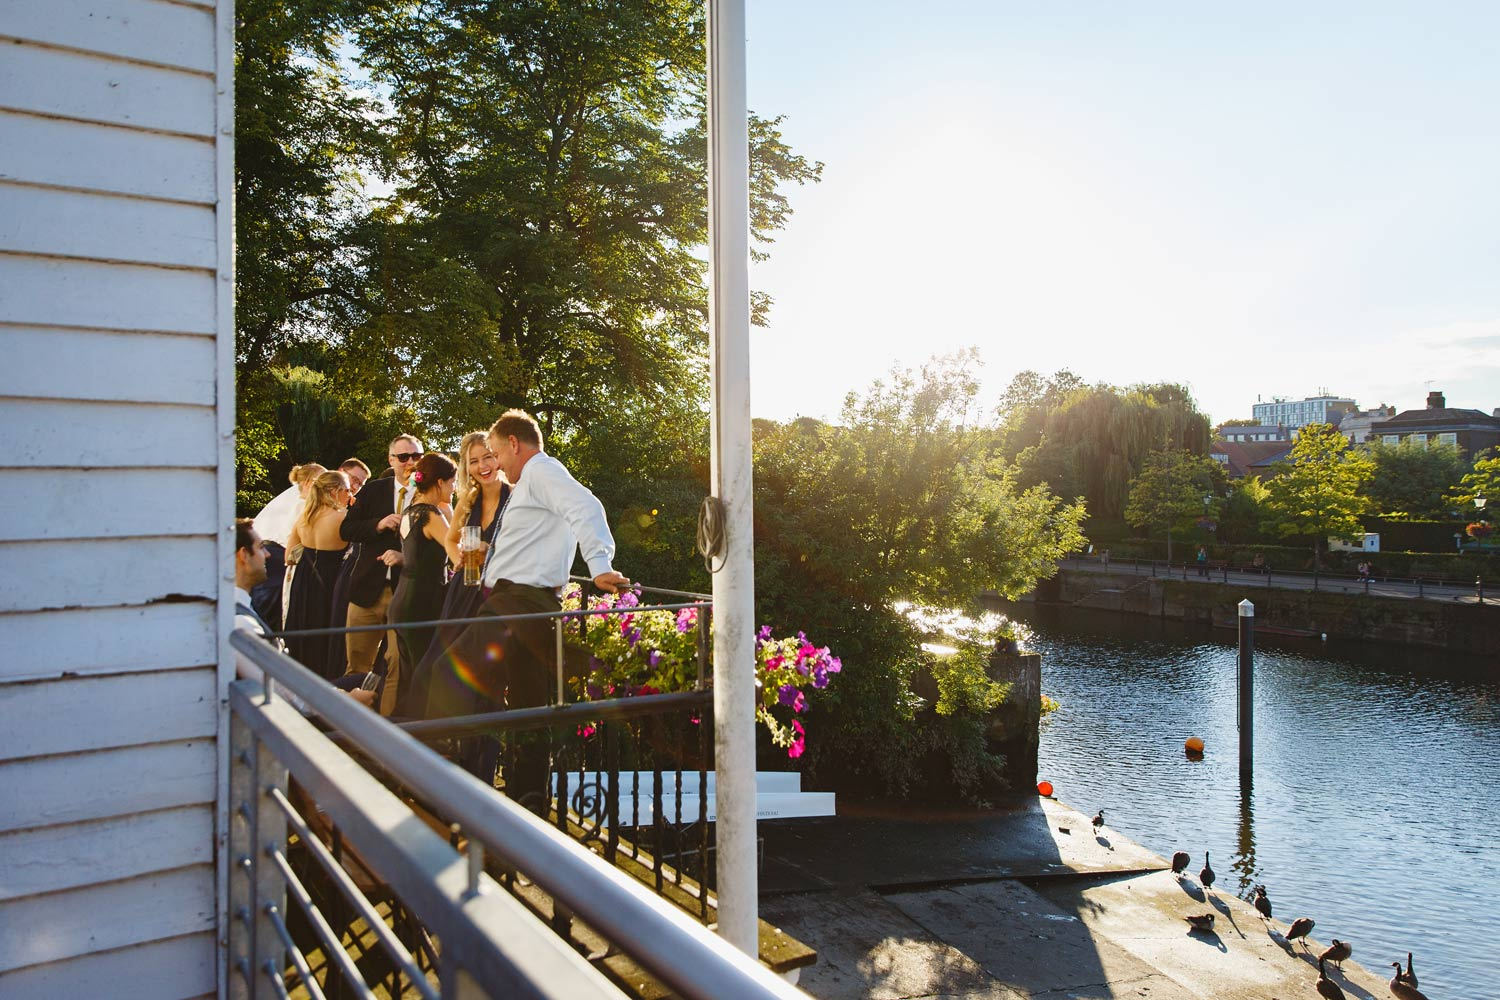 Wedding guests at Twickenham Rowing Club, London.